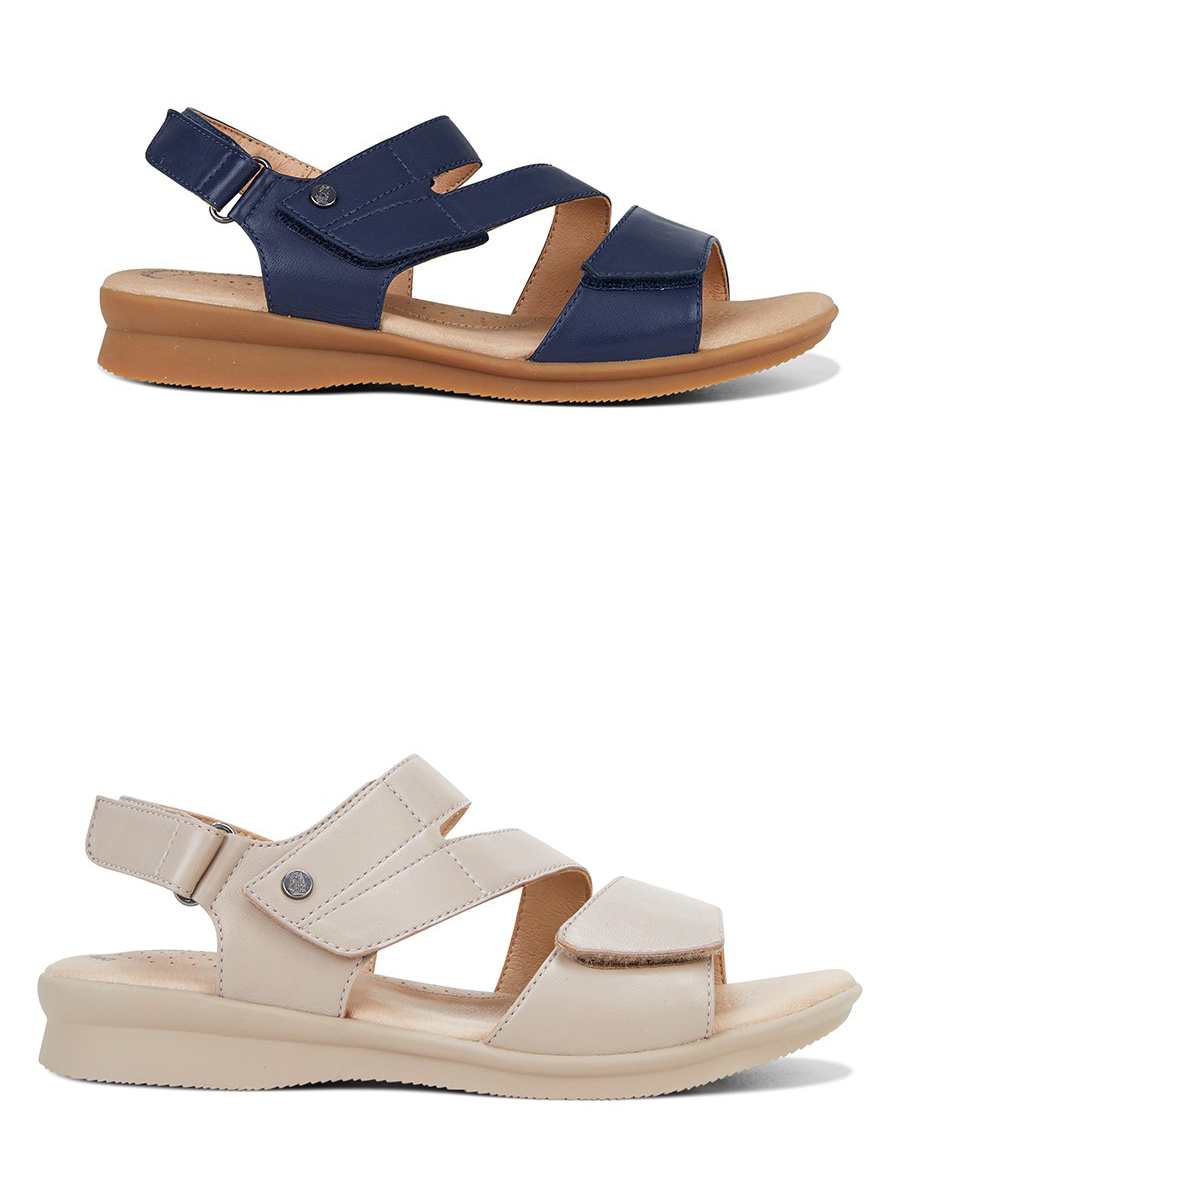 femmes Hush Puppies Nyssa Sandals Straps Summer Casual Work Comfortable chaussures